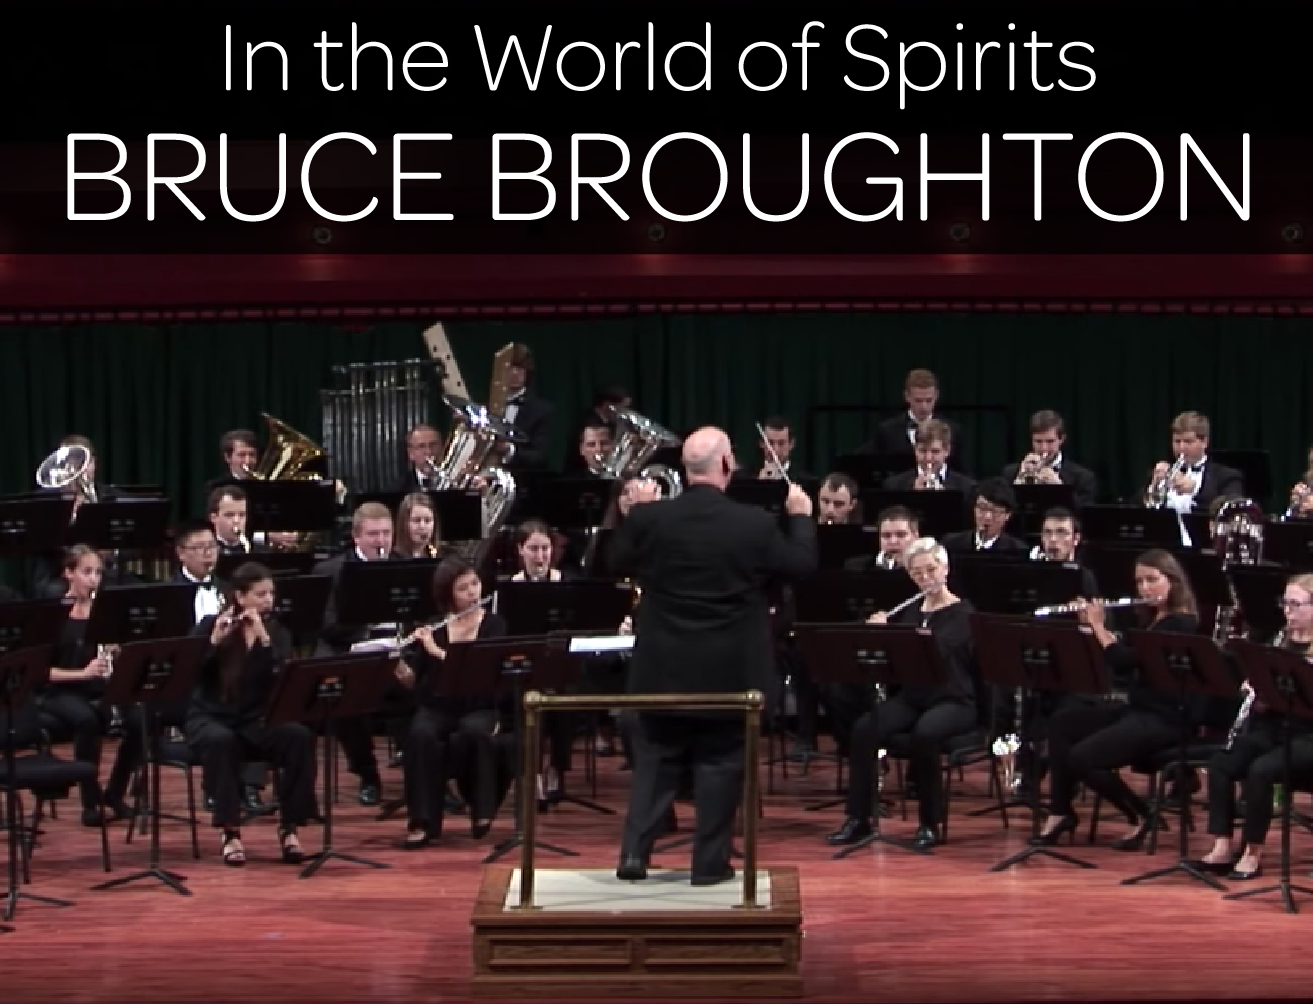 IN THE WORLD OF SPIRITS by Bruce Broughton